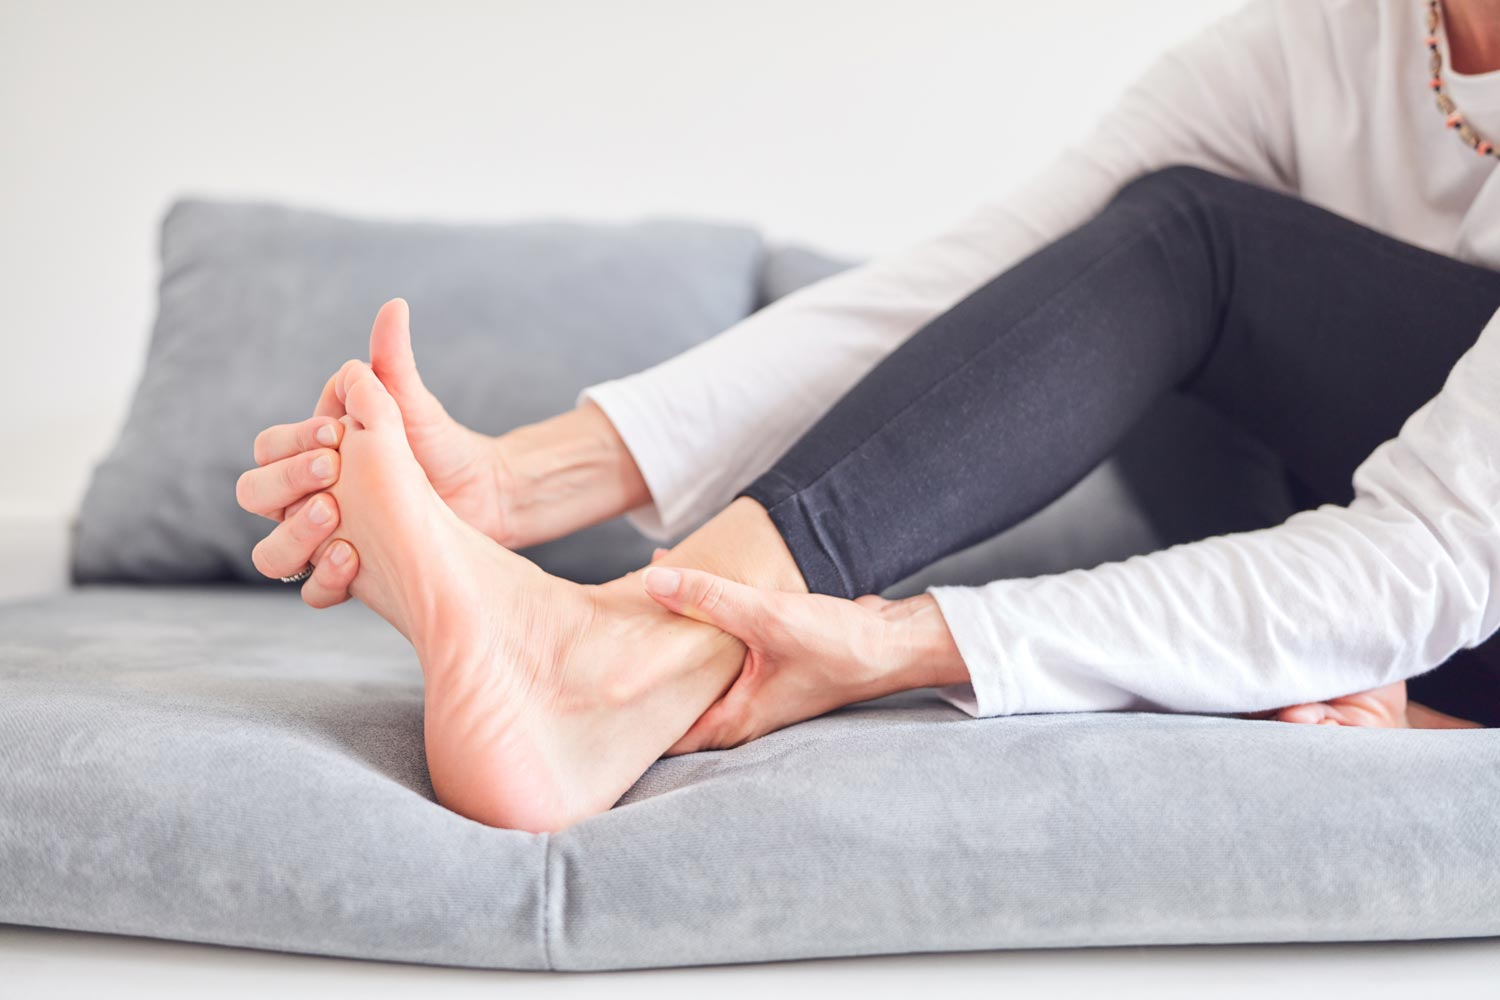 Holding heel and stretching toes